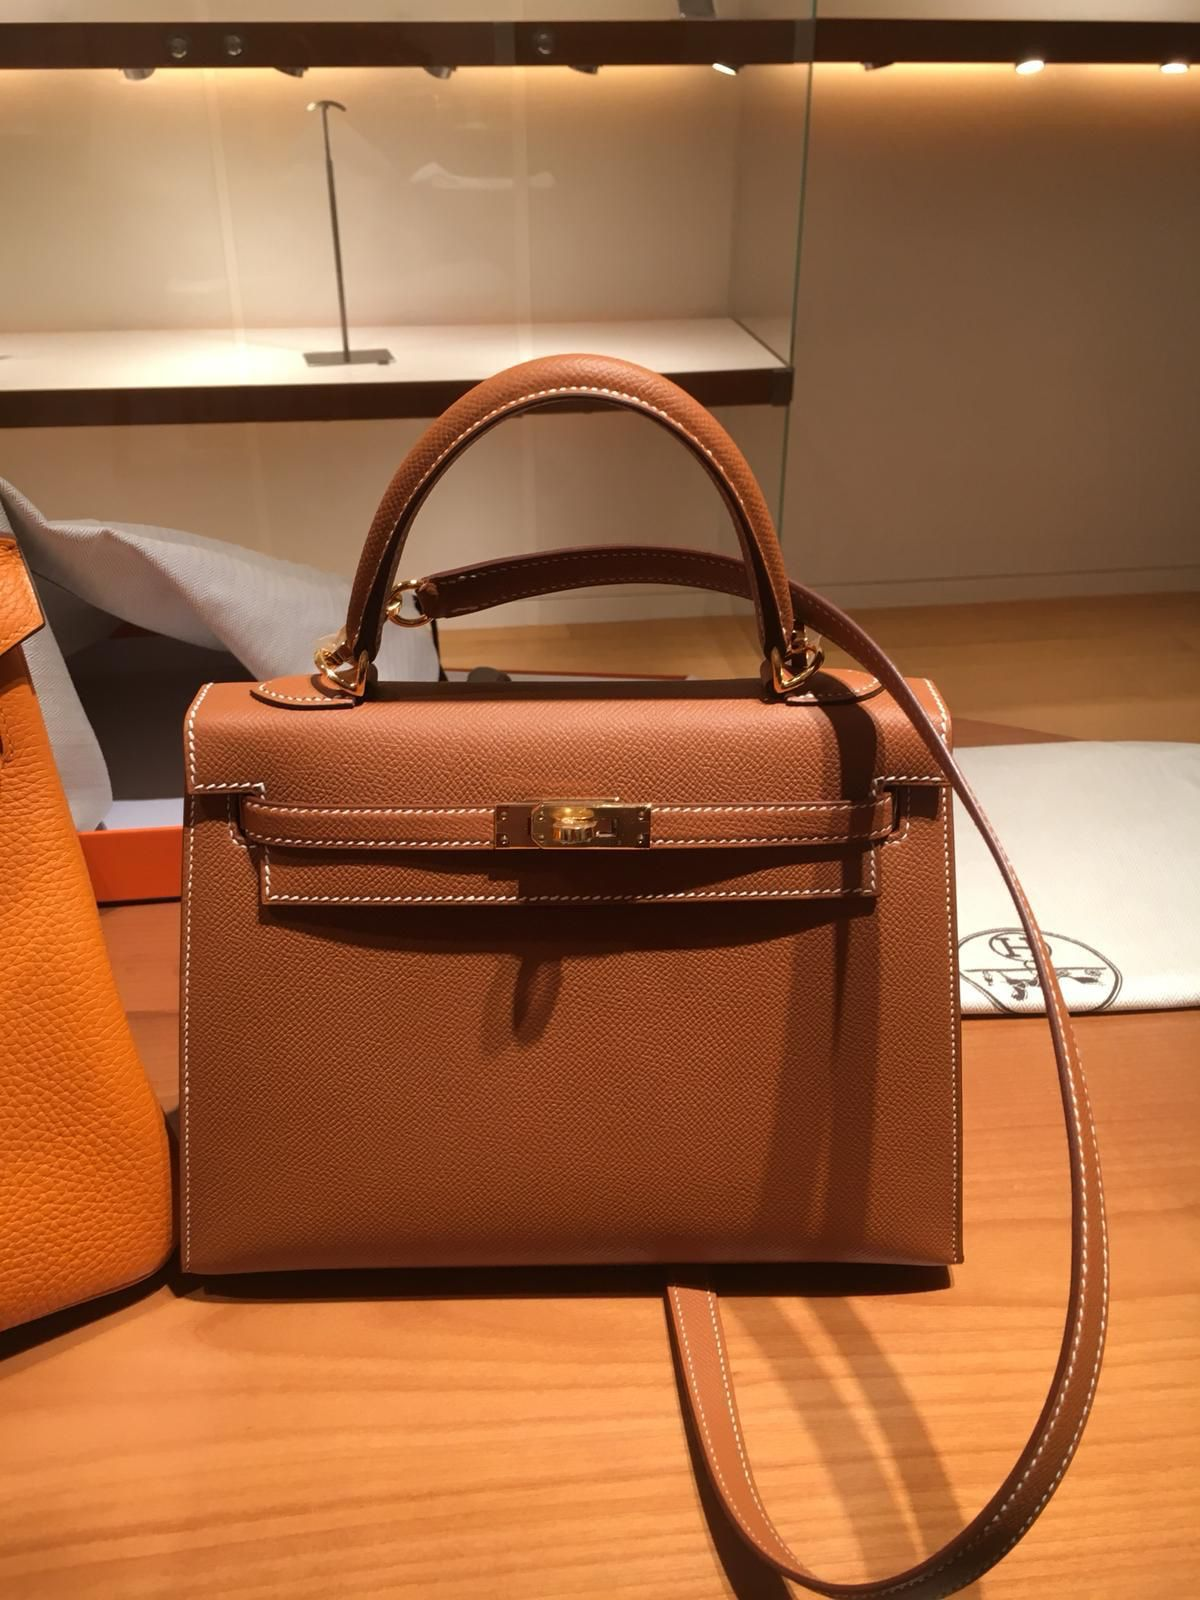 141b64eaca Hermes Kelly 25 Gold Epsom Gold Hardware  k25  hermes  kelly  handbags  bags   gold  rarebag  crocobags  limitededition  harrods  christmasgifts  stylish  ...